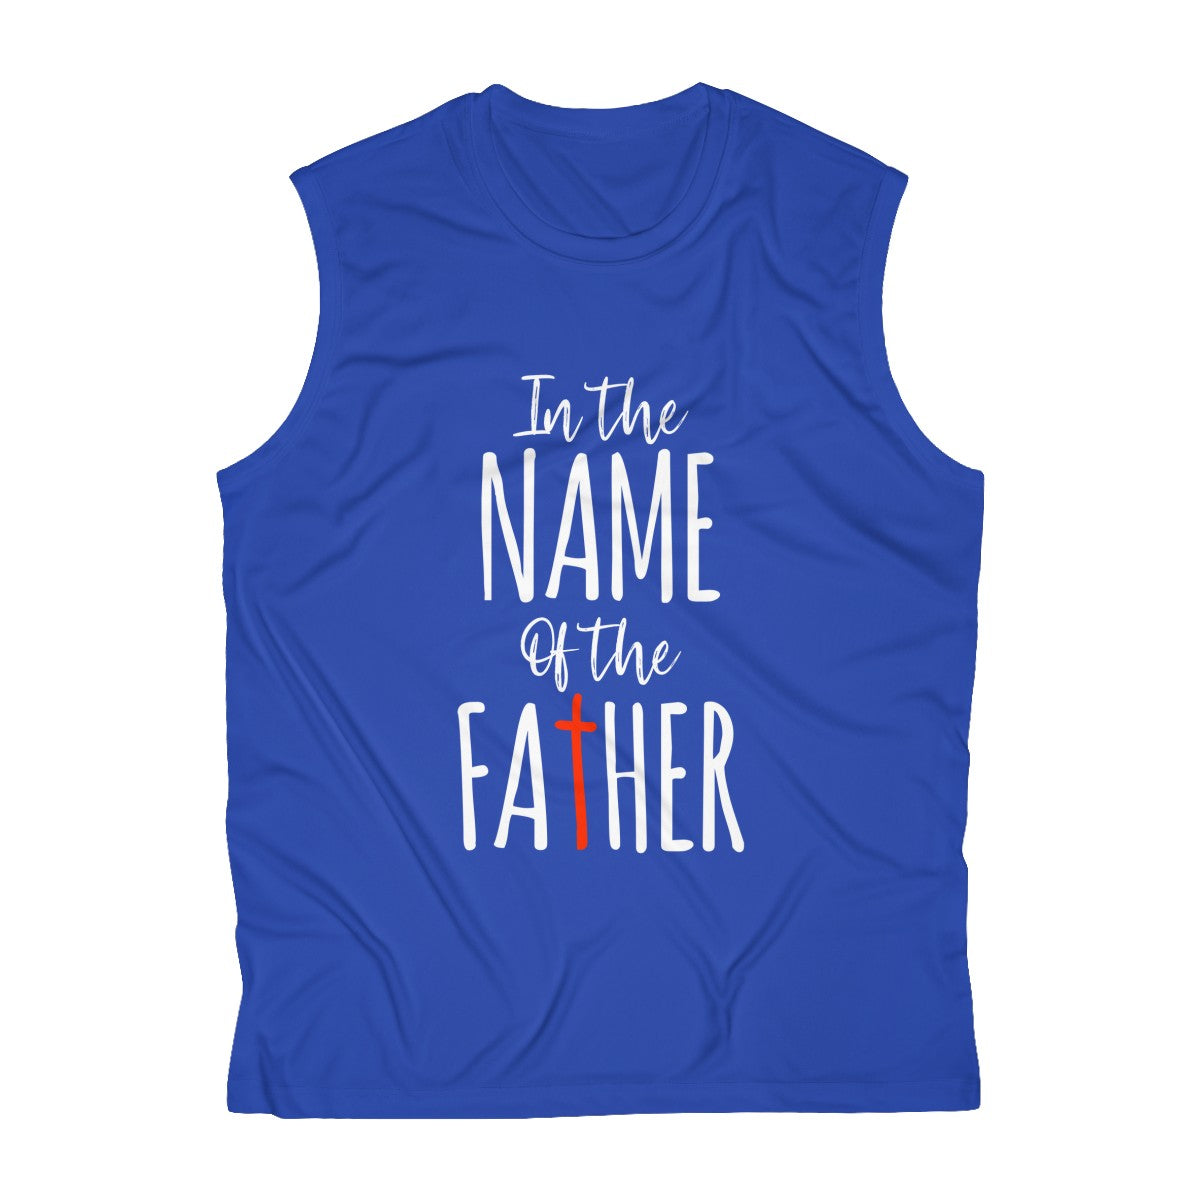 In the Name of the Father  Men's Sleeveless Performance Tee